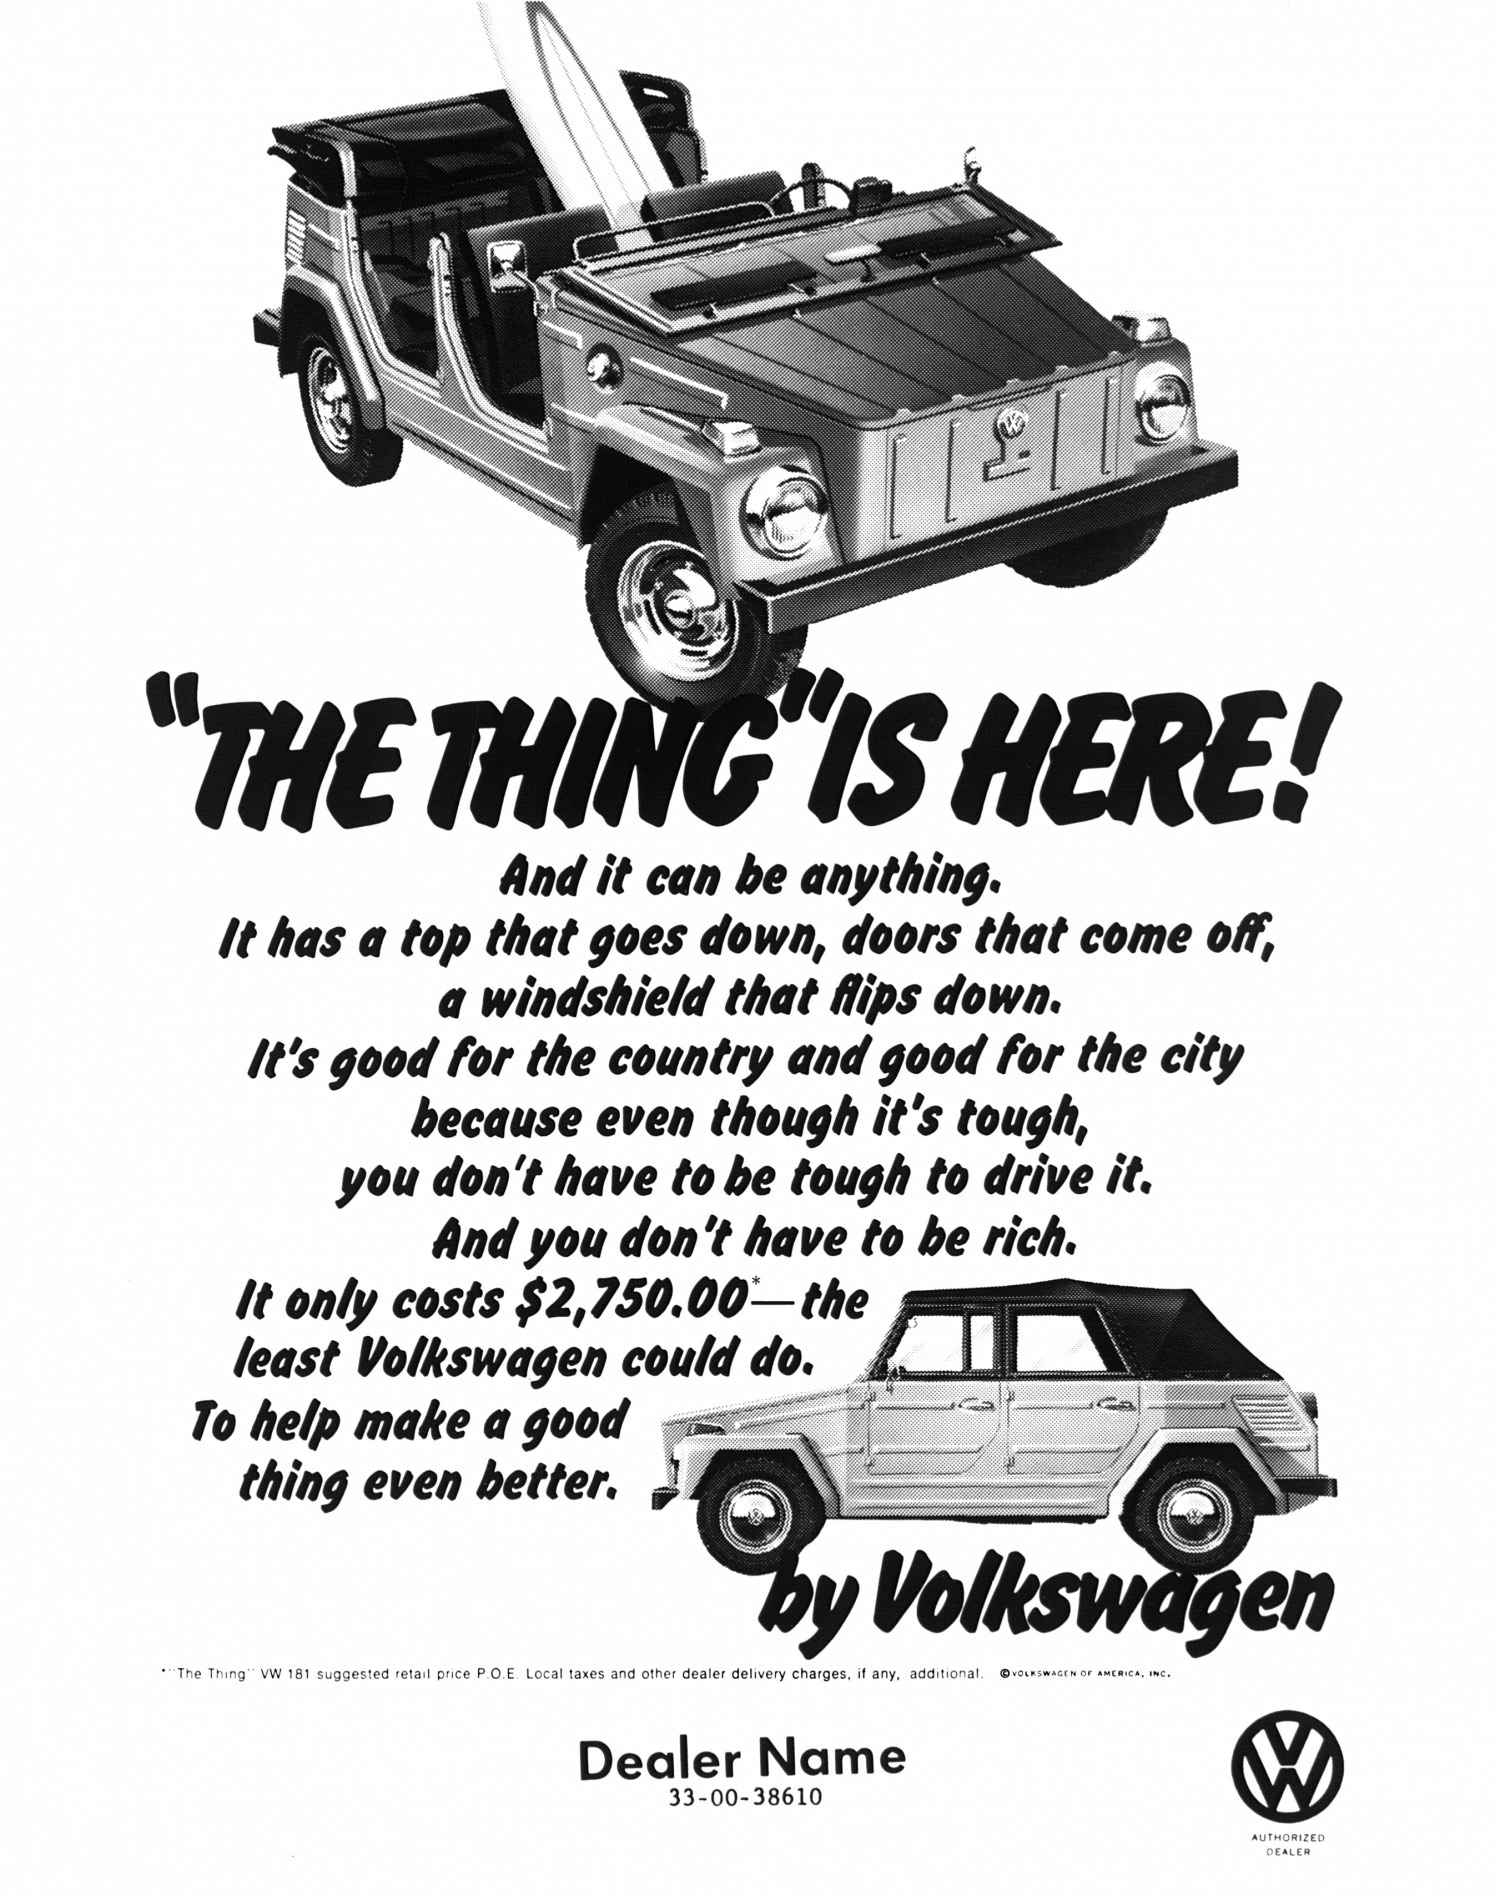 1973 Volkswagen Thing advertisement